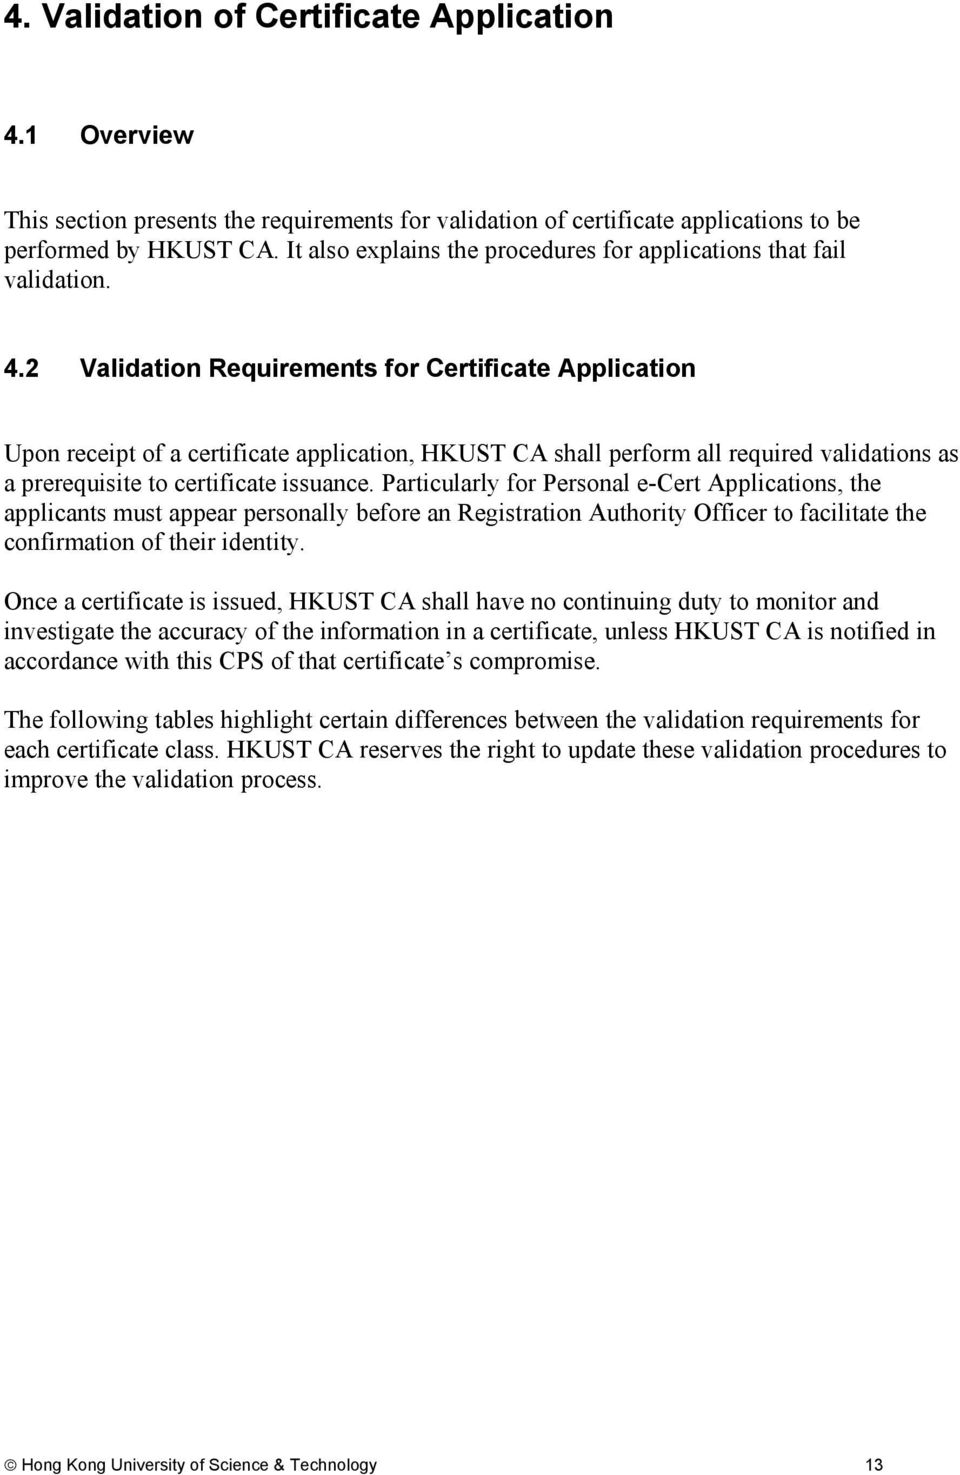 2 Validation Requirements for Certificate Application Upon receipt of a certificate application, HKUST CA shall perform all required validations as a prerequisite to certificate issuance.